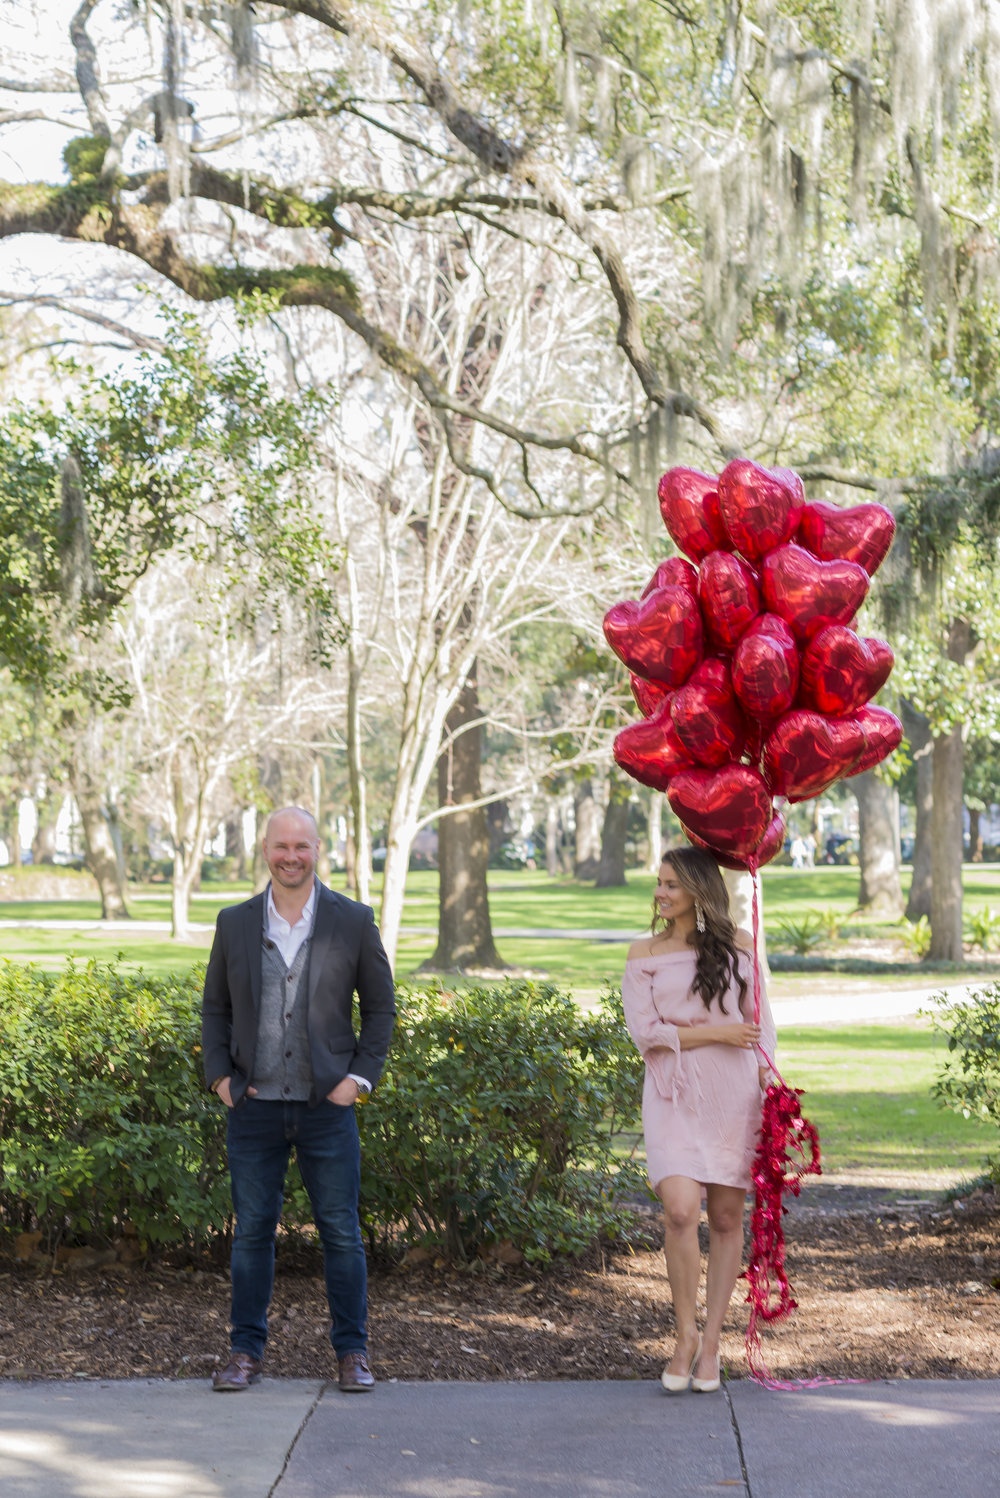 T.C. & Brenna in Forsyth Park on VDay in Savannah GA